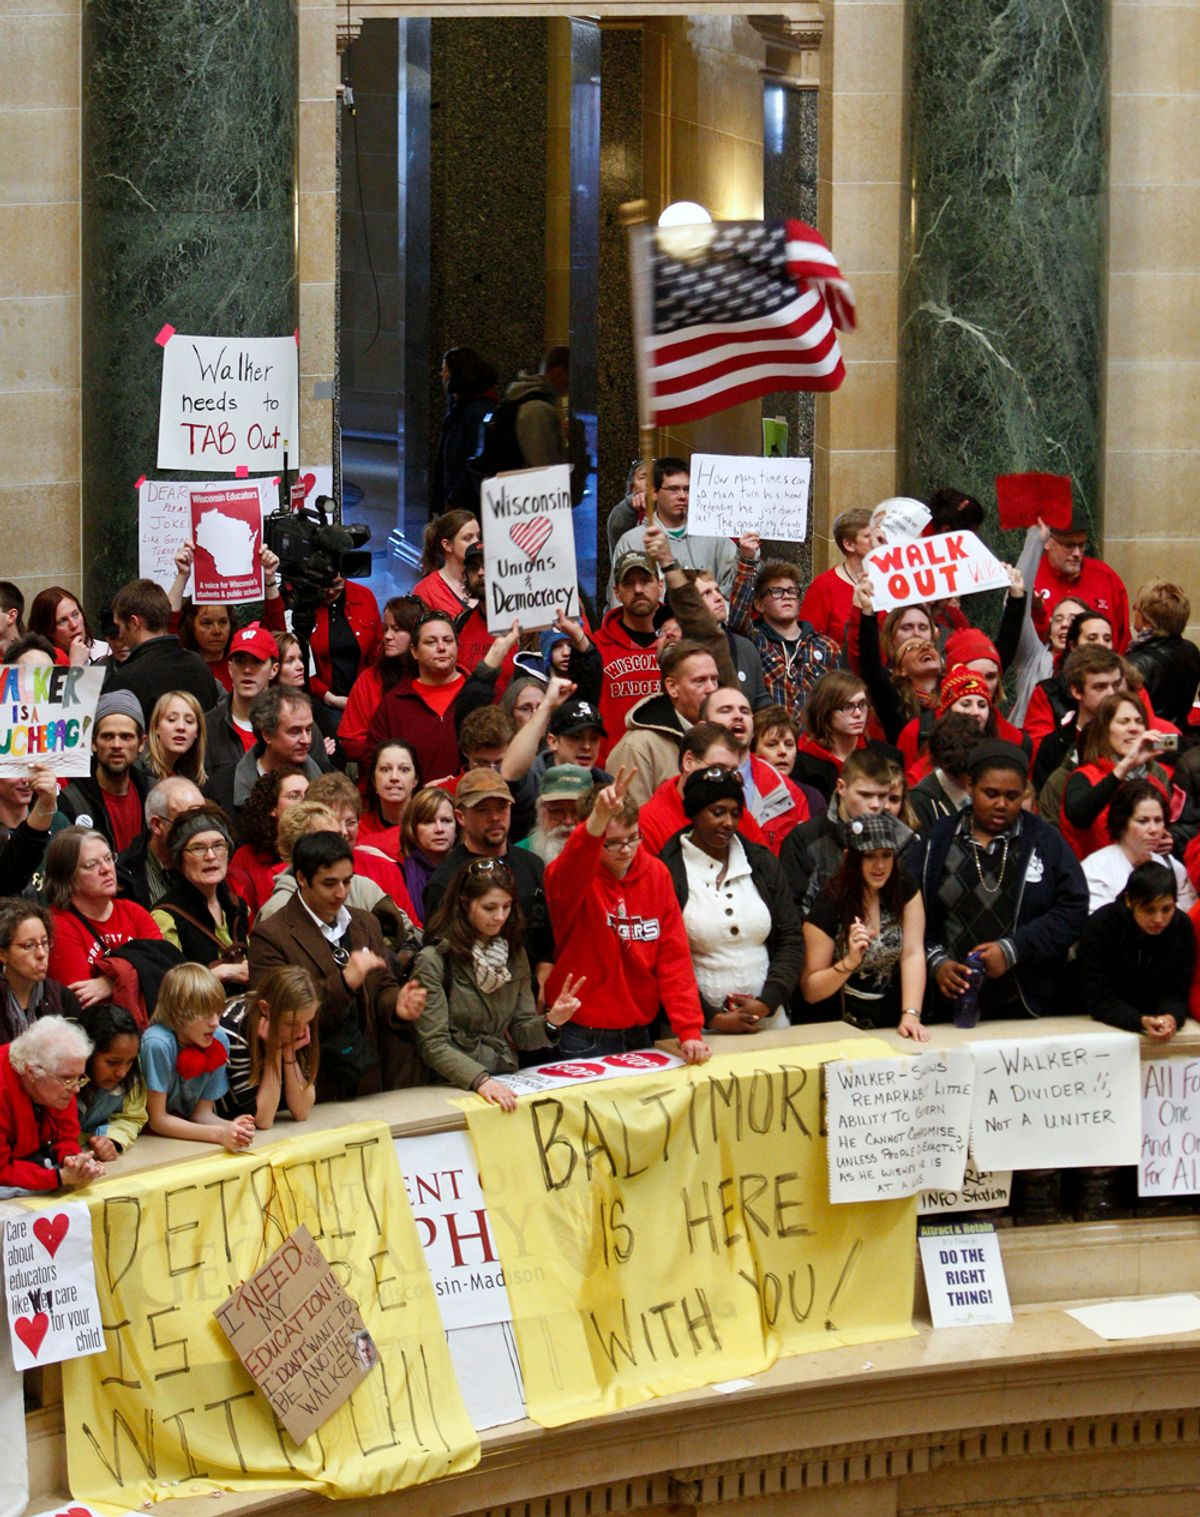 FILE - In this Feb. 18, 2011, file photo opponents to the Wisconsin Gov. Scott Walker's bill to eliminate collective bargaining rights for many state workers protest in the rotunda of the State Capitol in Madison, Wis. Stung by the wave of anti-union sentiment in Wisconsin and more than a dozen other states, organized labor is re-energizing as a political force and trying to take advantage of the growing backlash.  They expect momentum from the protests to spill into the 2012 election cycle. (AP Photo/Andy Manis, File) (Andy Manis)